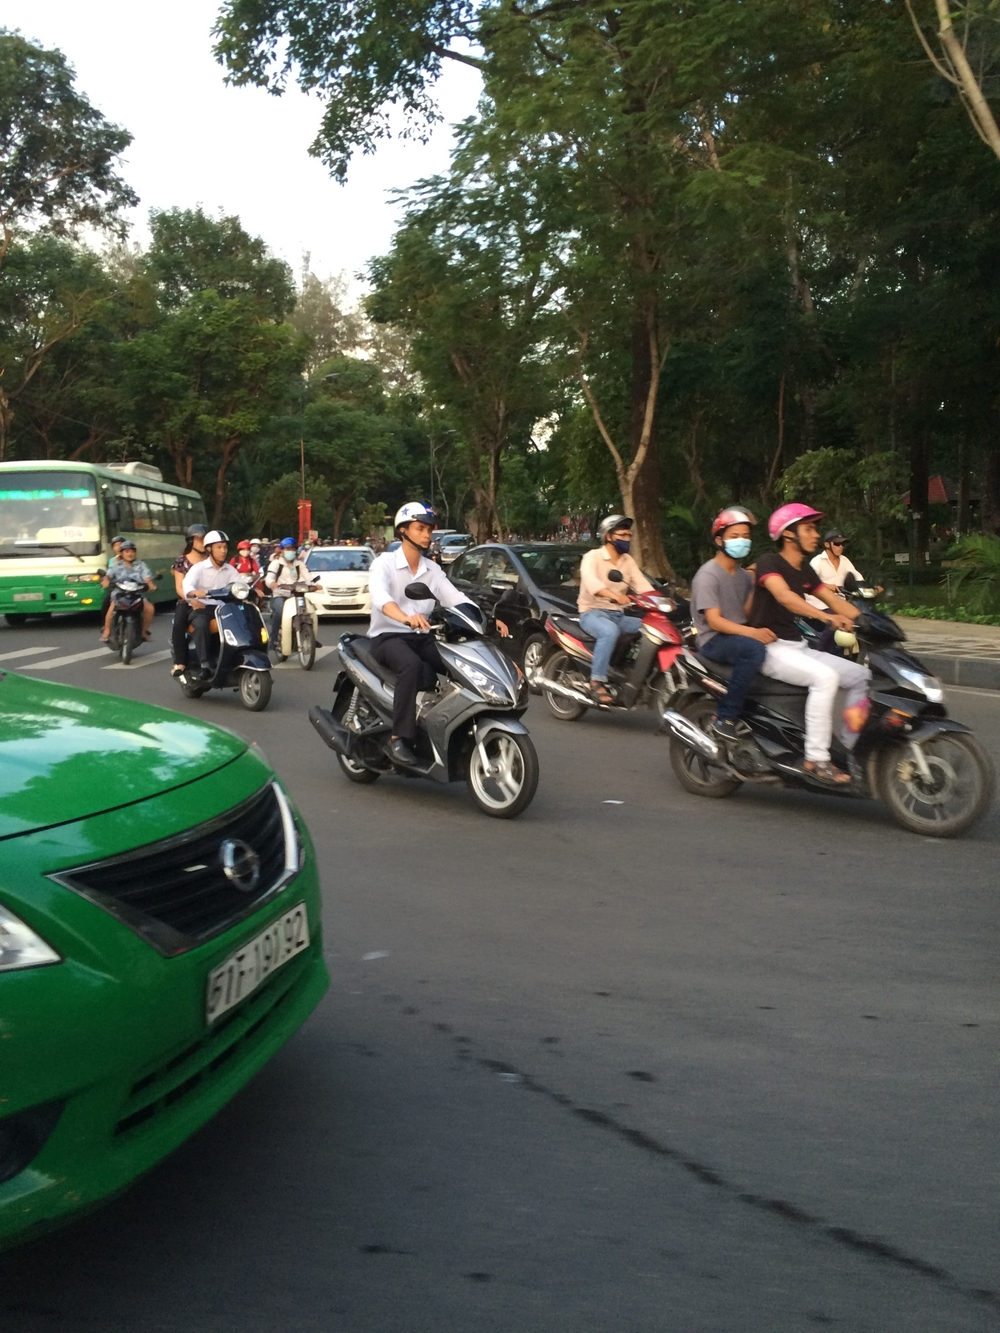 Some of the scooters.